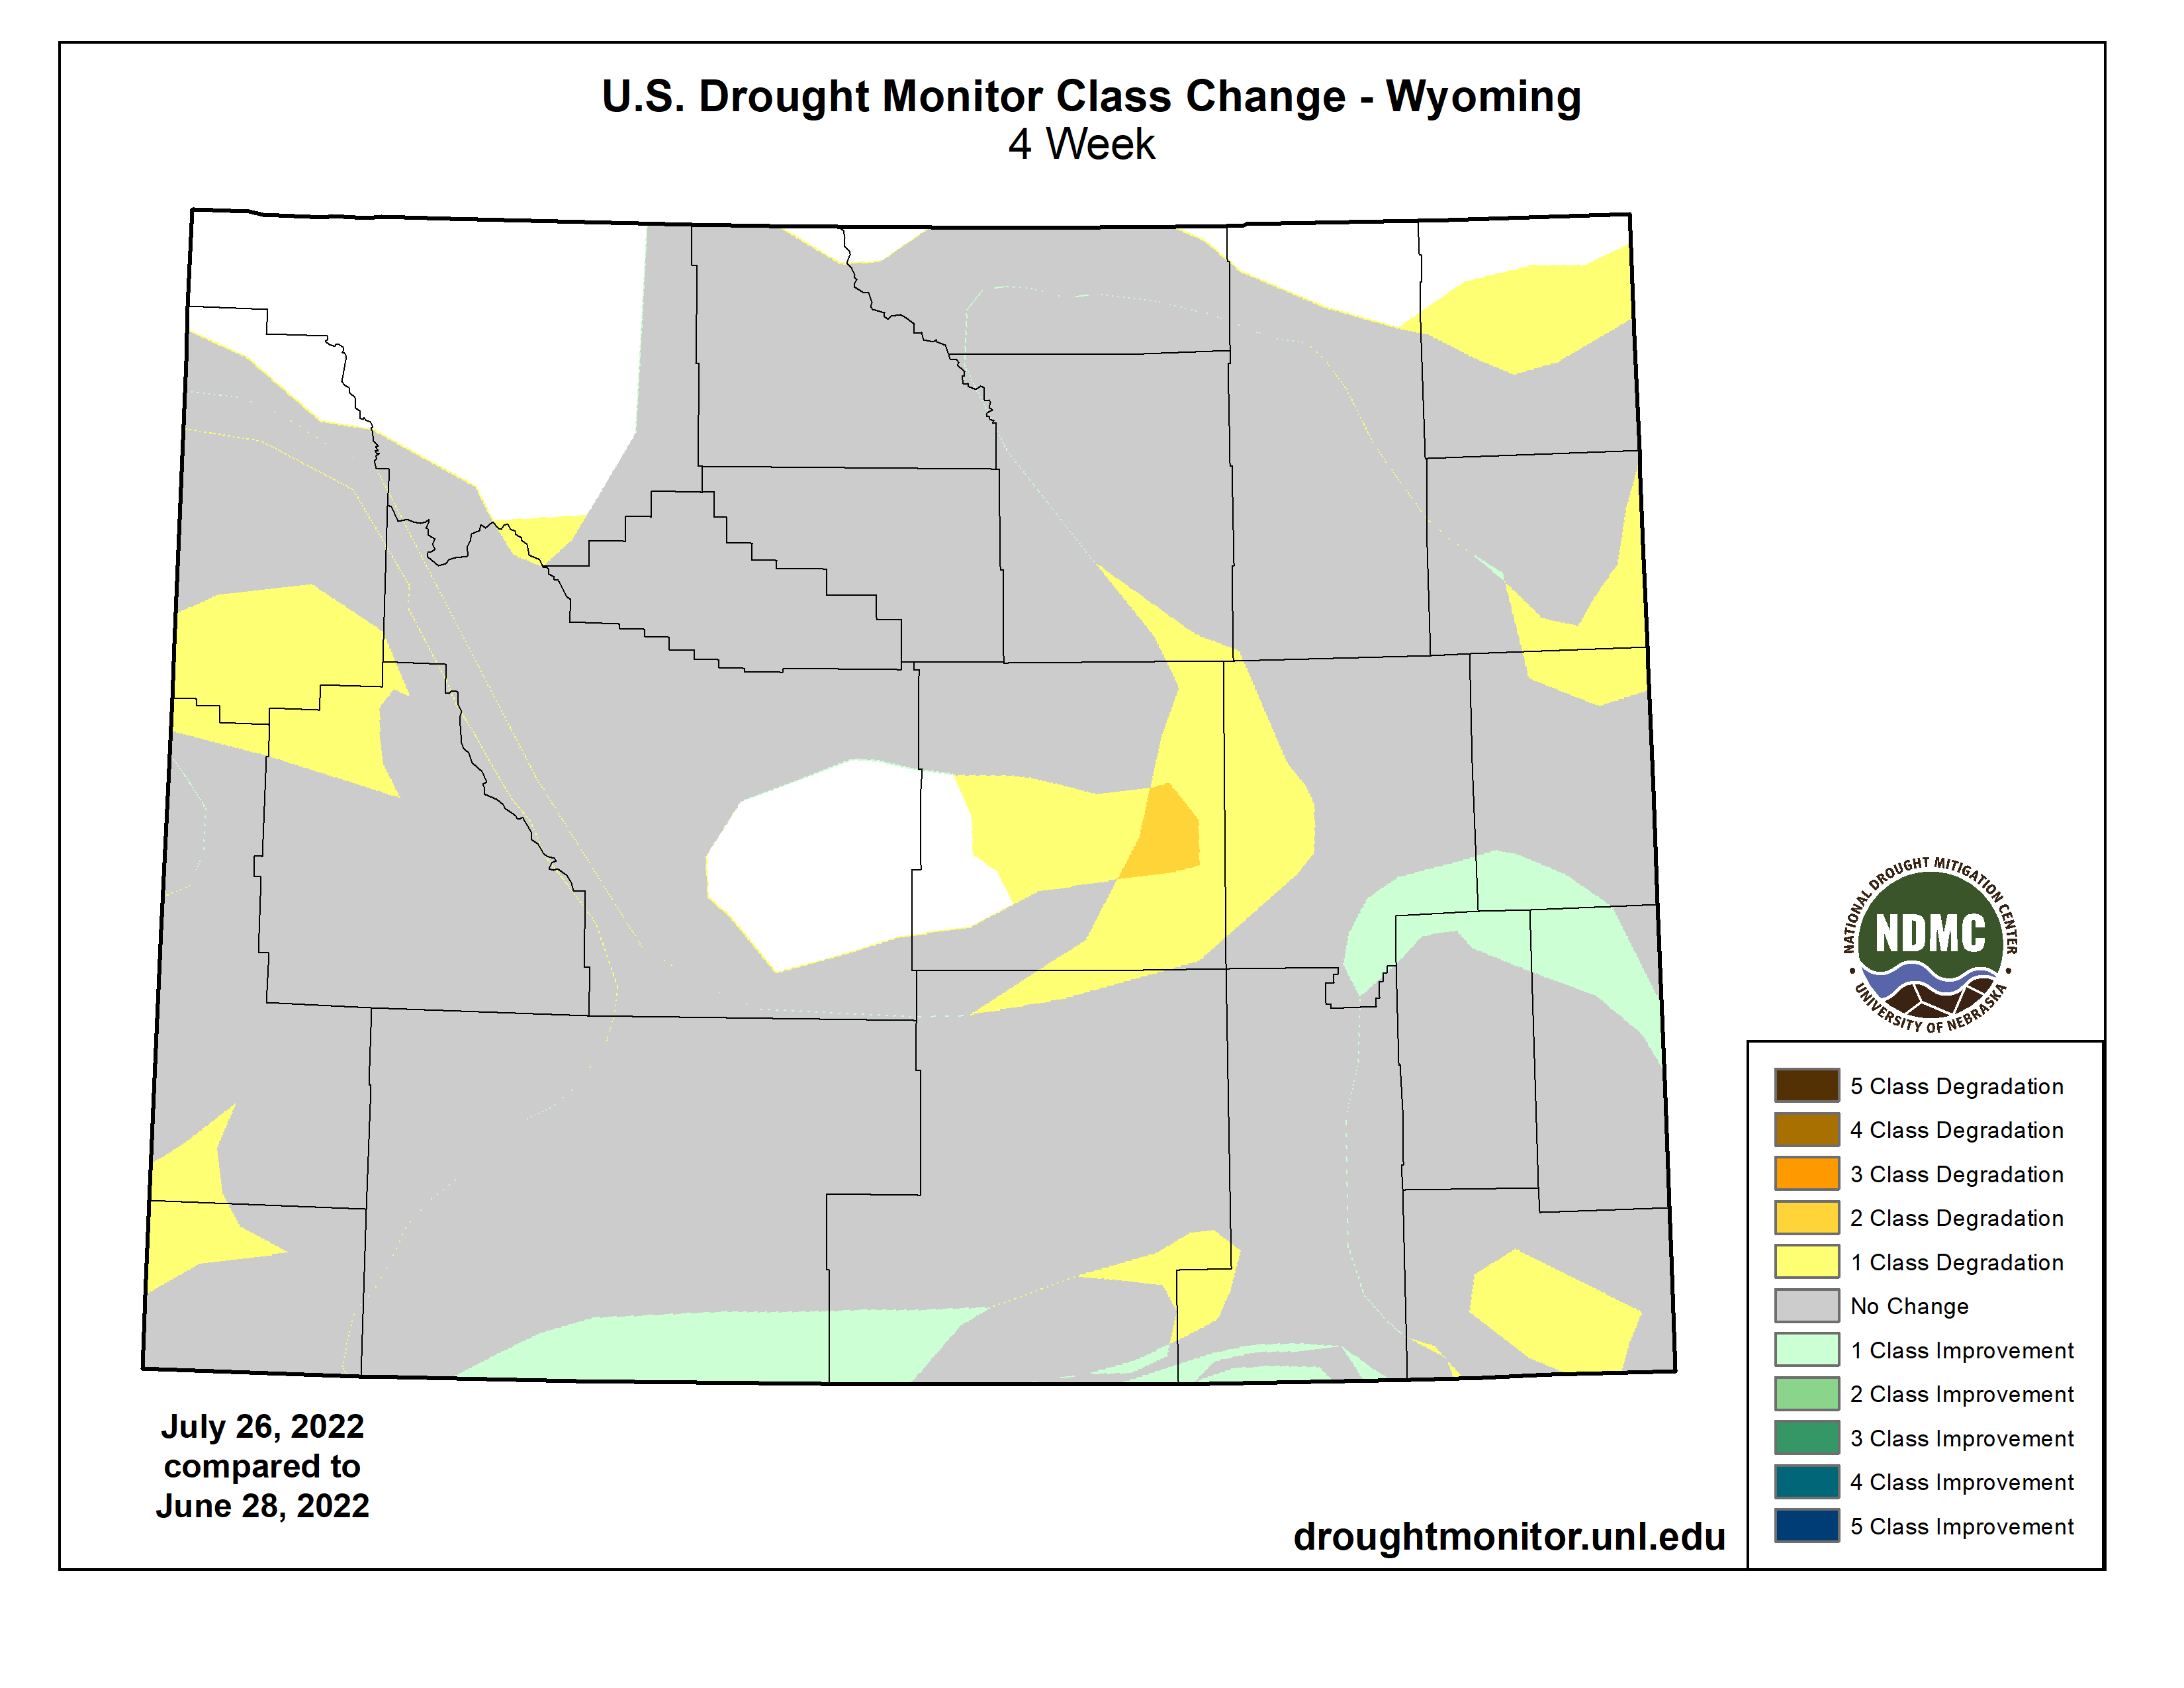 Drought Classification Change - 1 Month